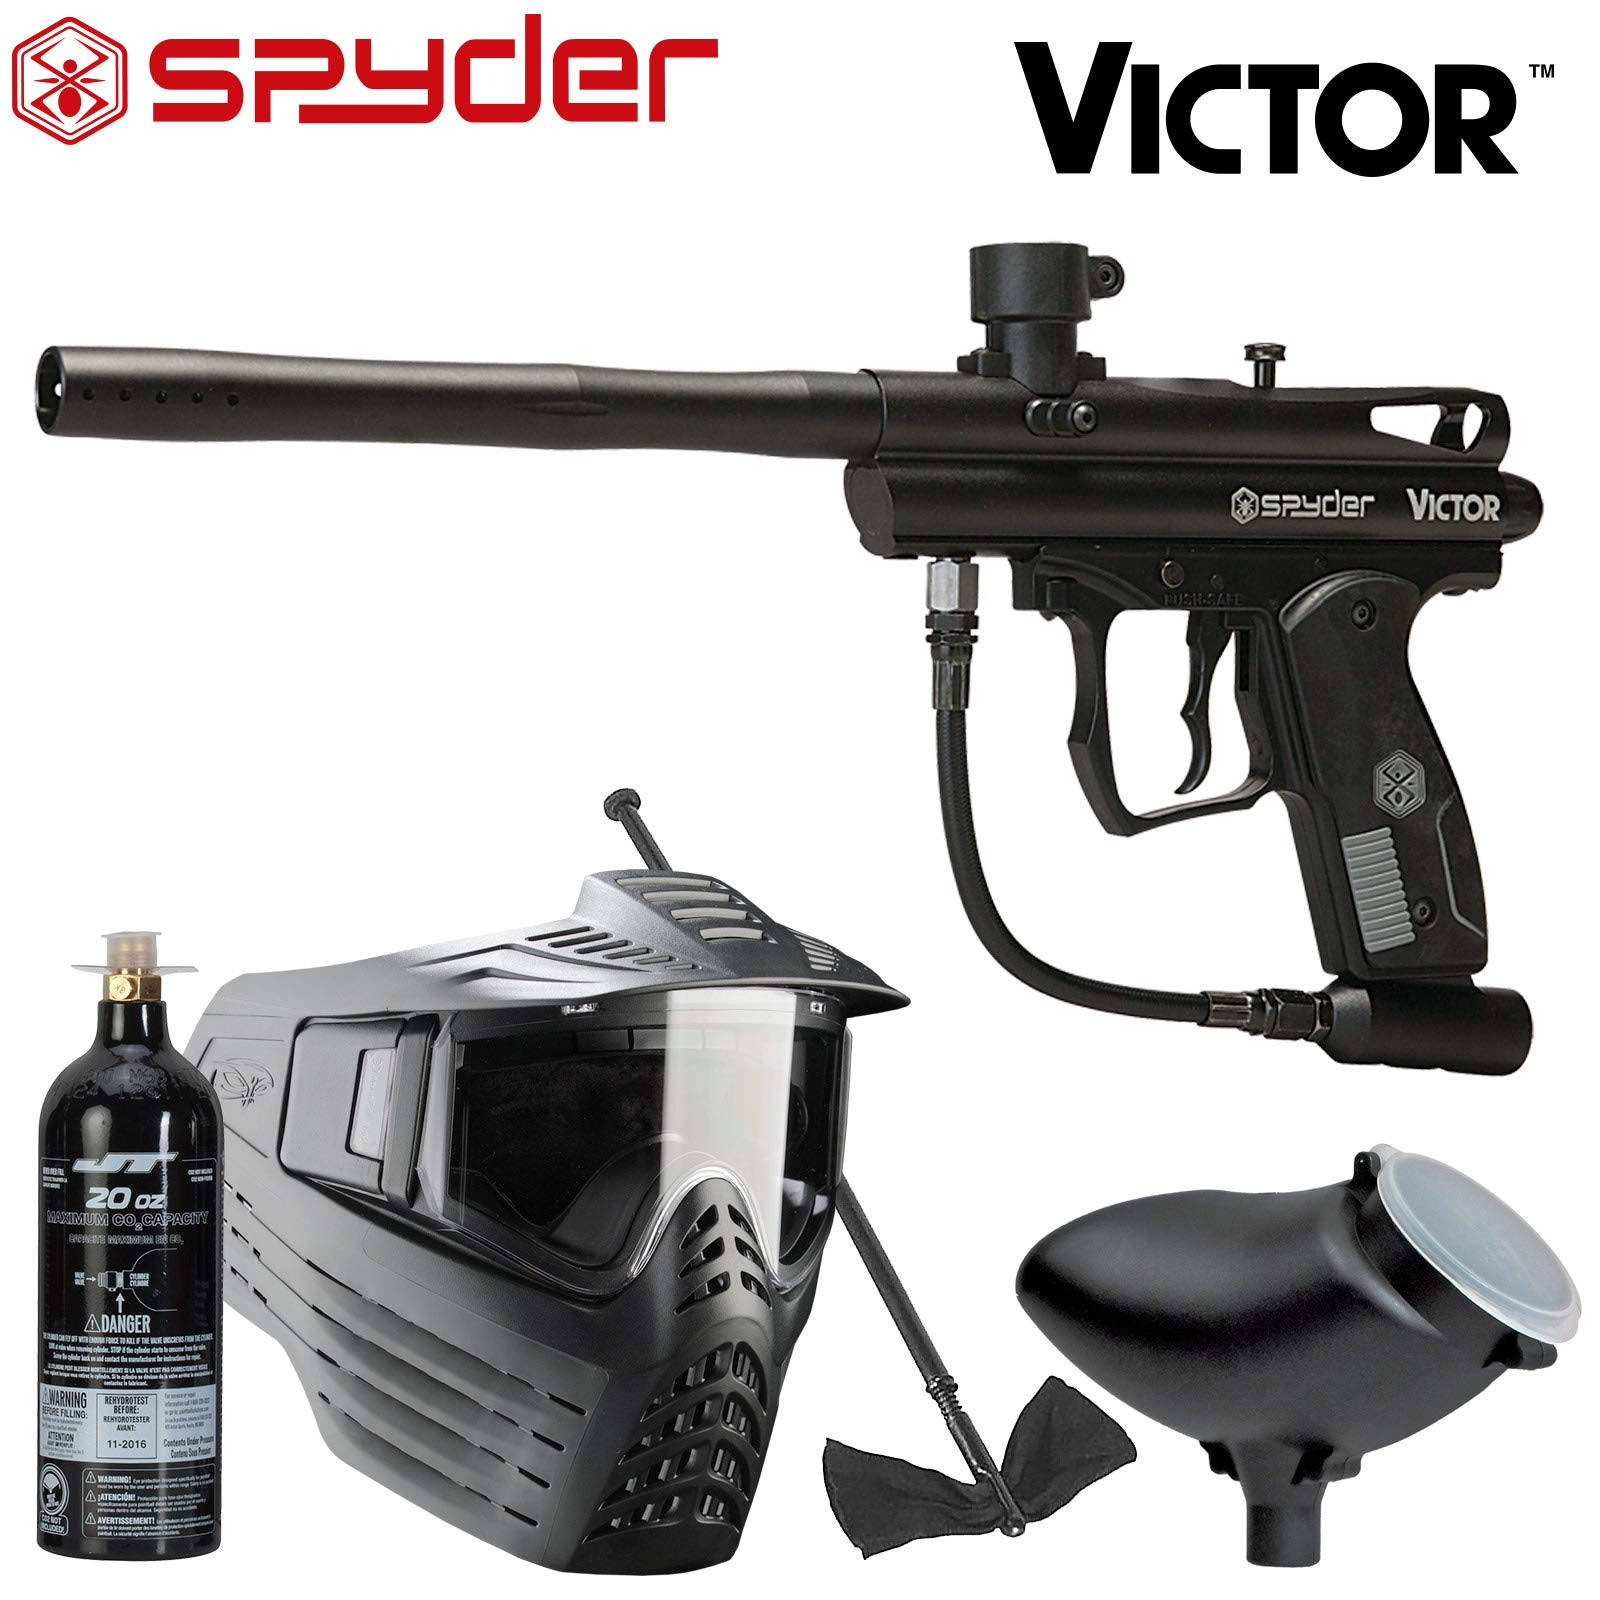 Spyder Victor Package .68Cal Paintball Kit Includes Sentry Goggle, Empty 20oz Co2 Tank, 200Rd Loader & Squeegee, Black by Spyder